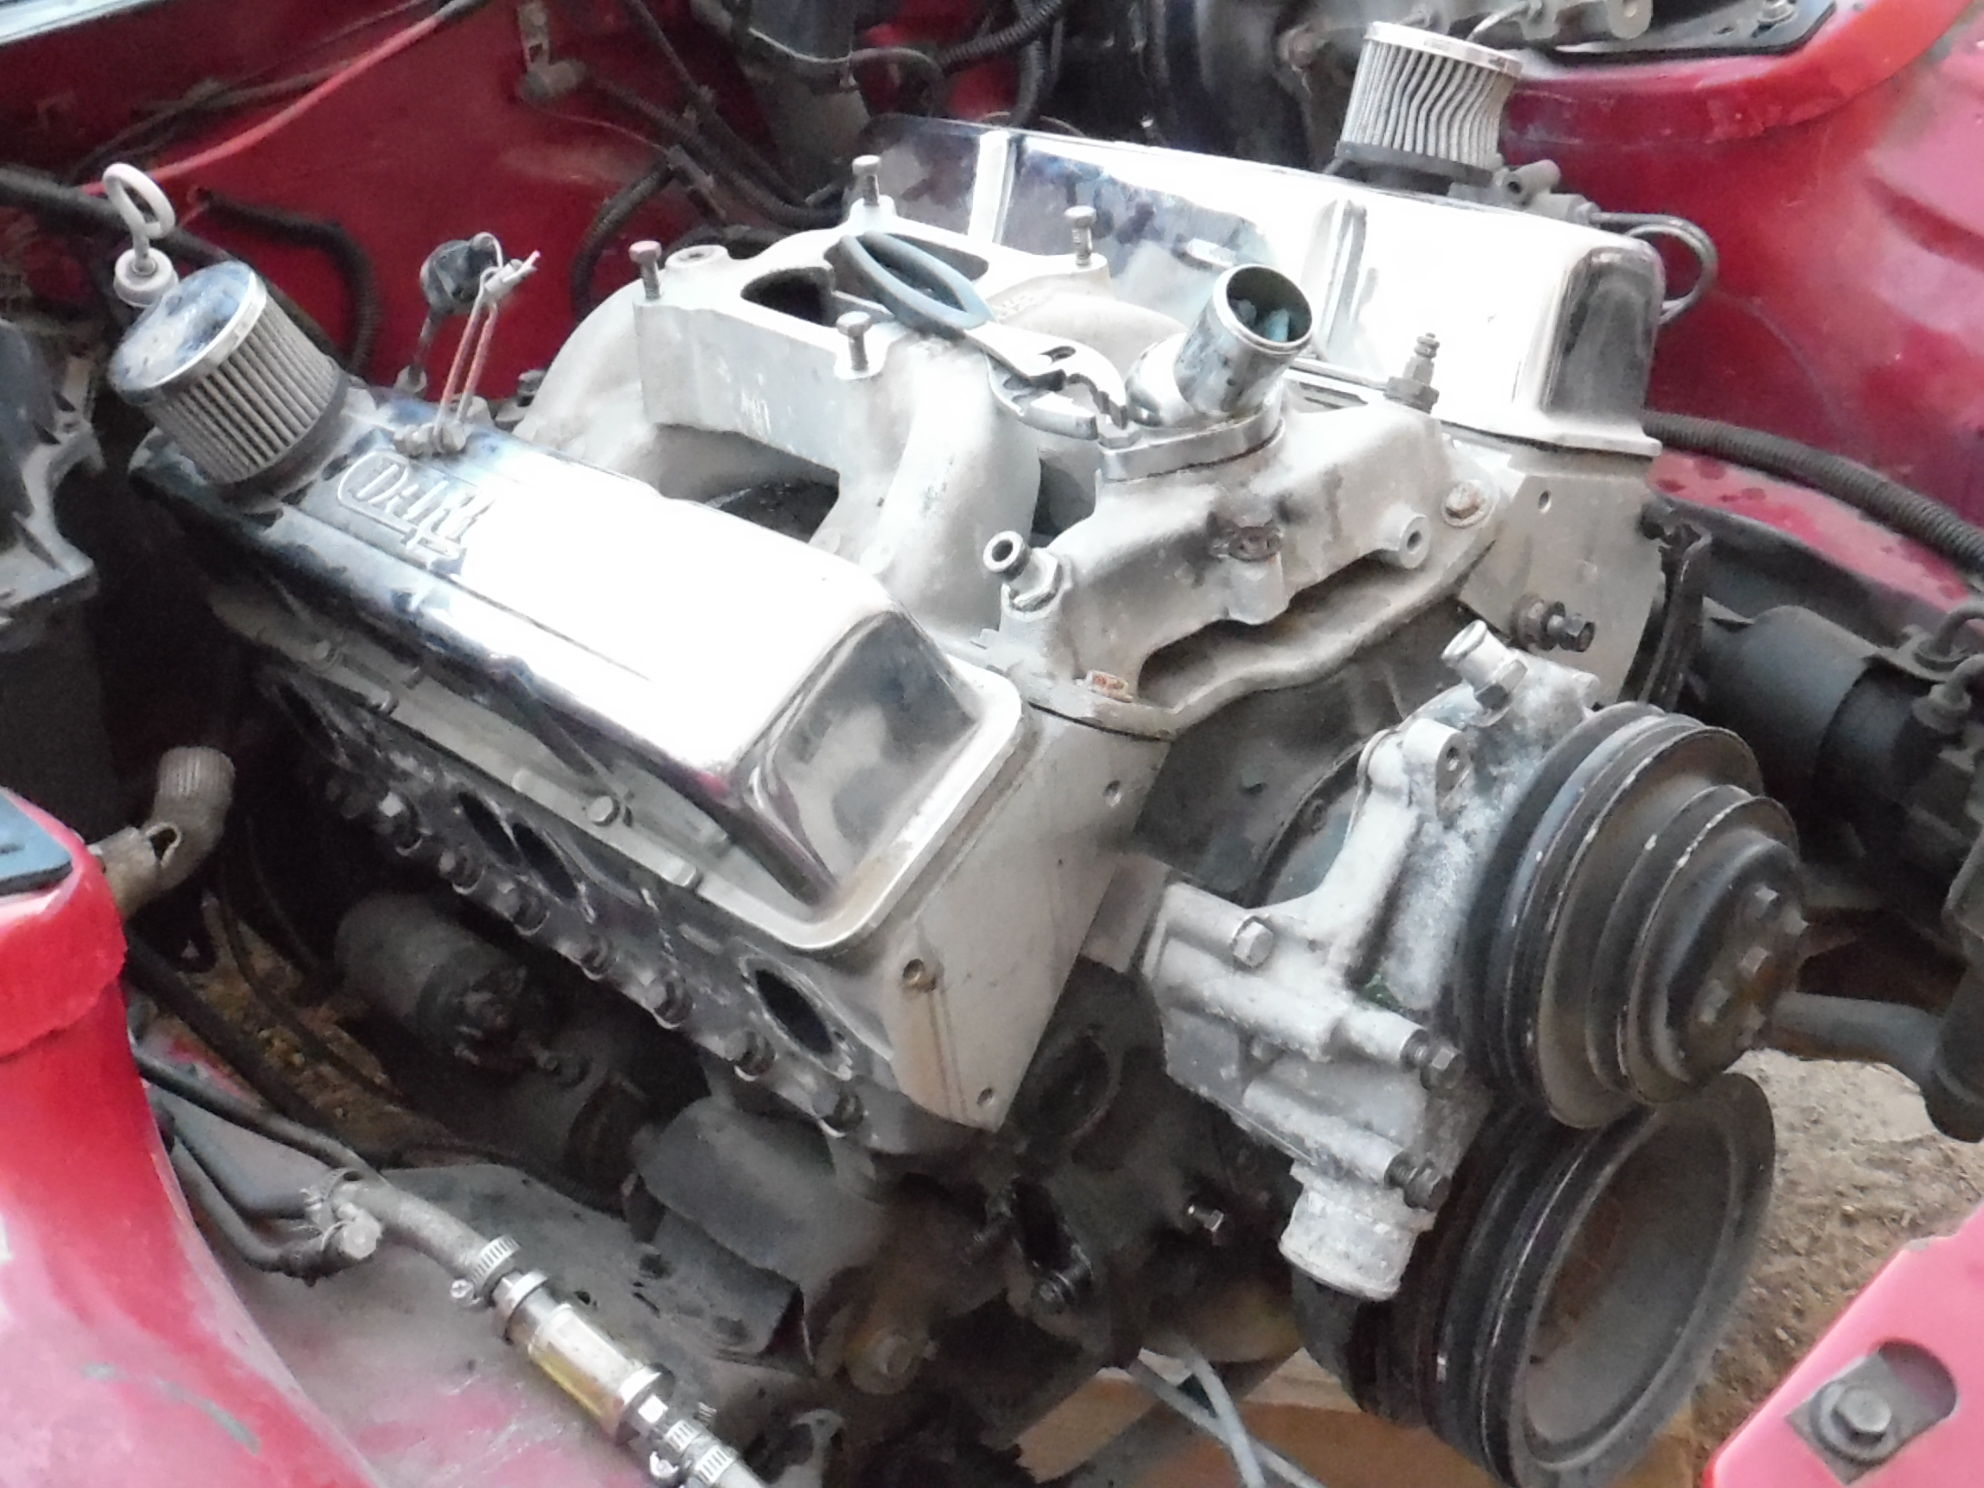 84 z28 build and lookin for info on 383 stroker third generation got most the parts off to ease removal headers are a pain 18 of a turn from top side 18 a turn from the bottom side defiantly going to look for a malvernweather Gallery